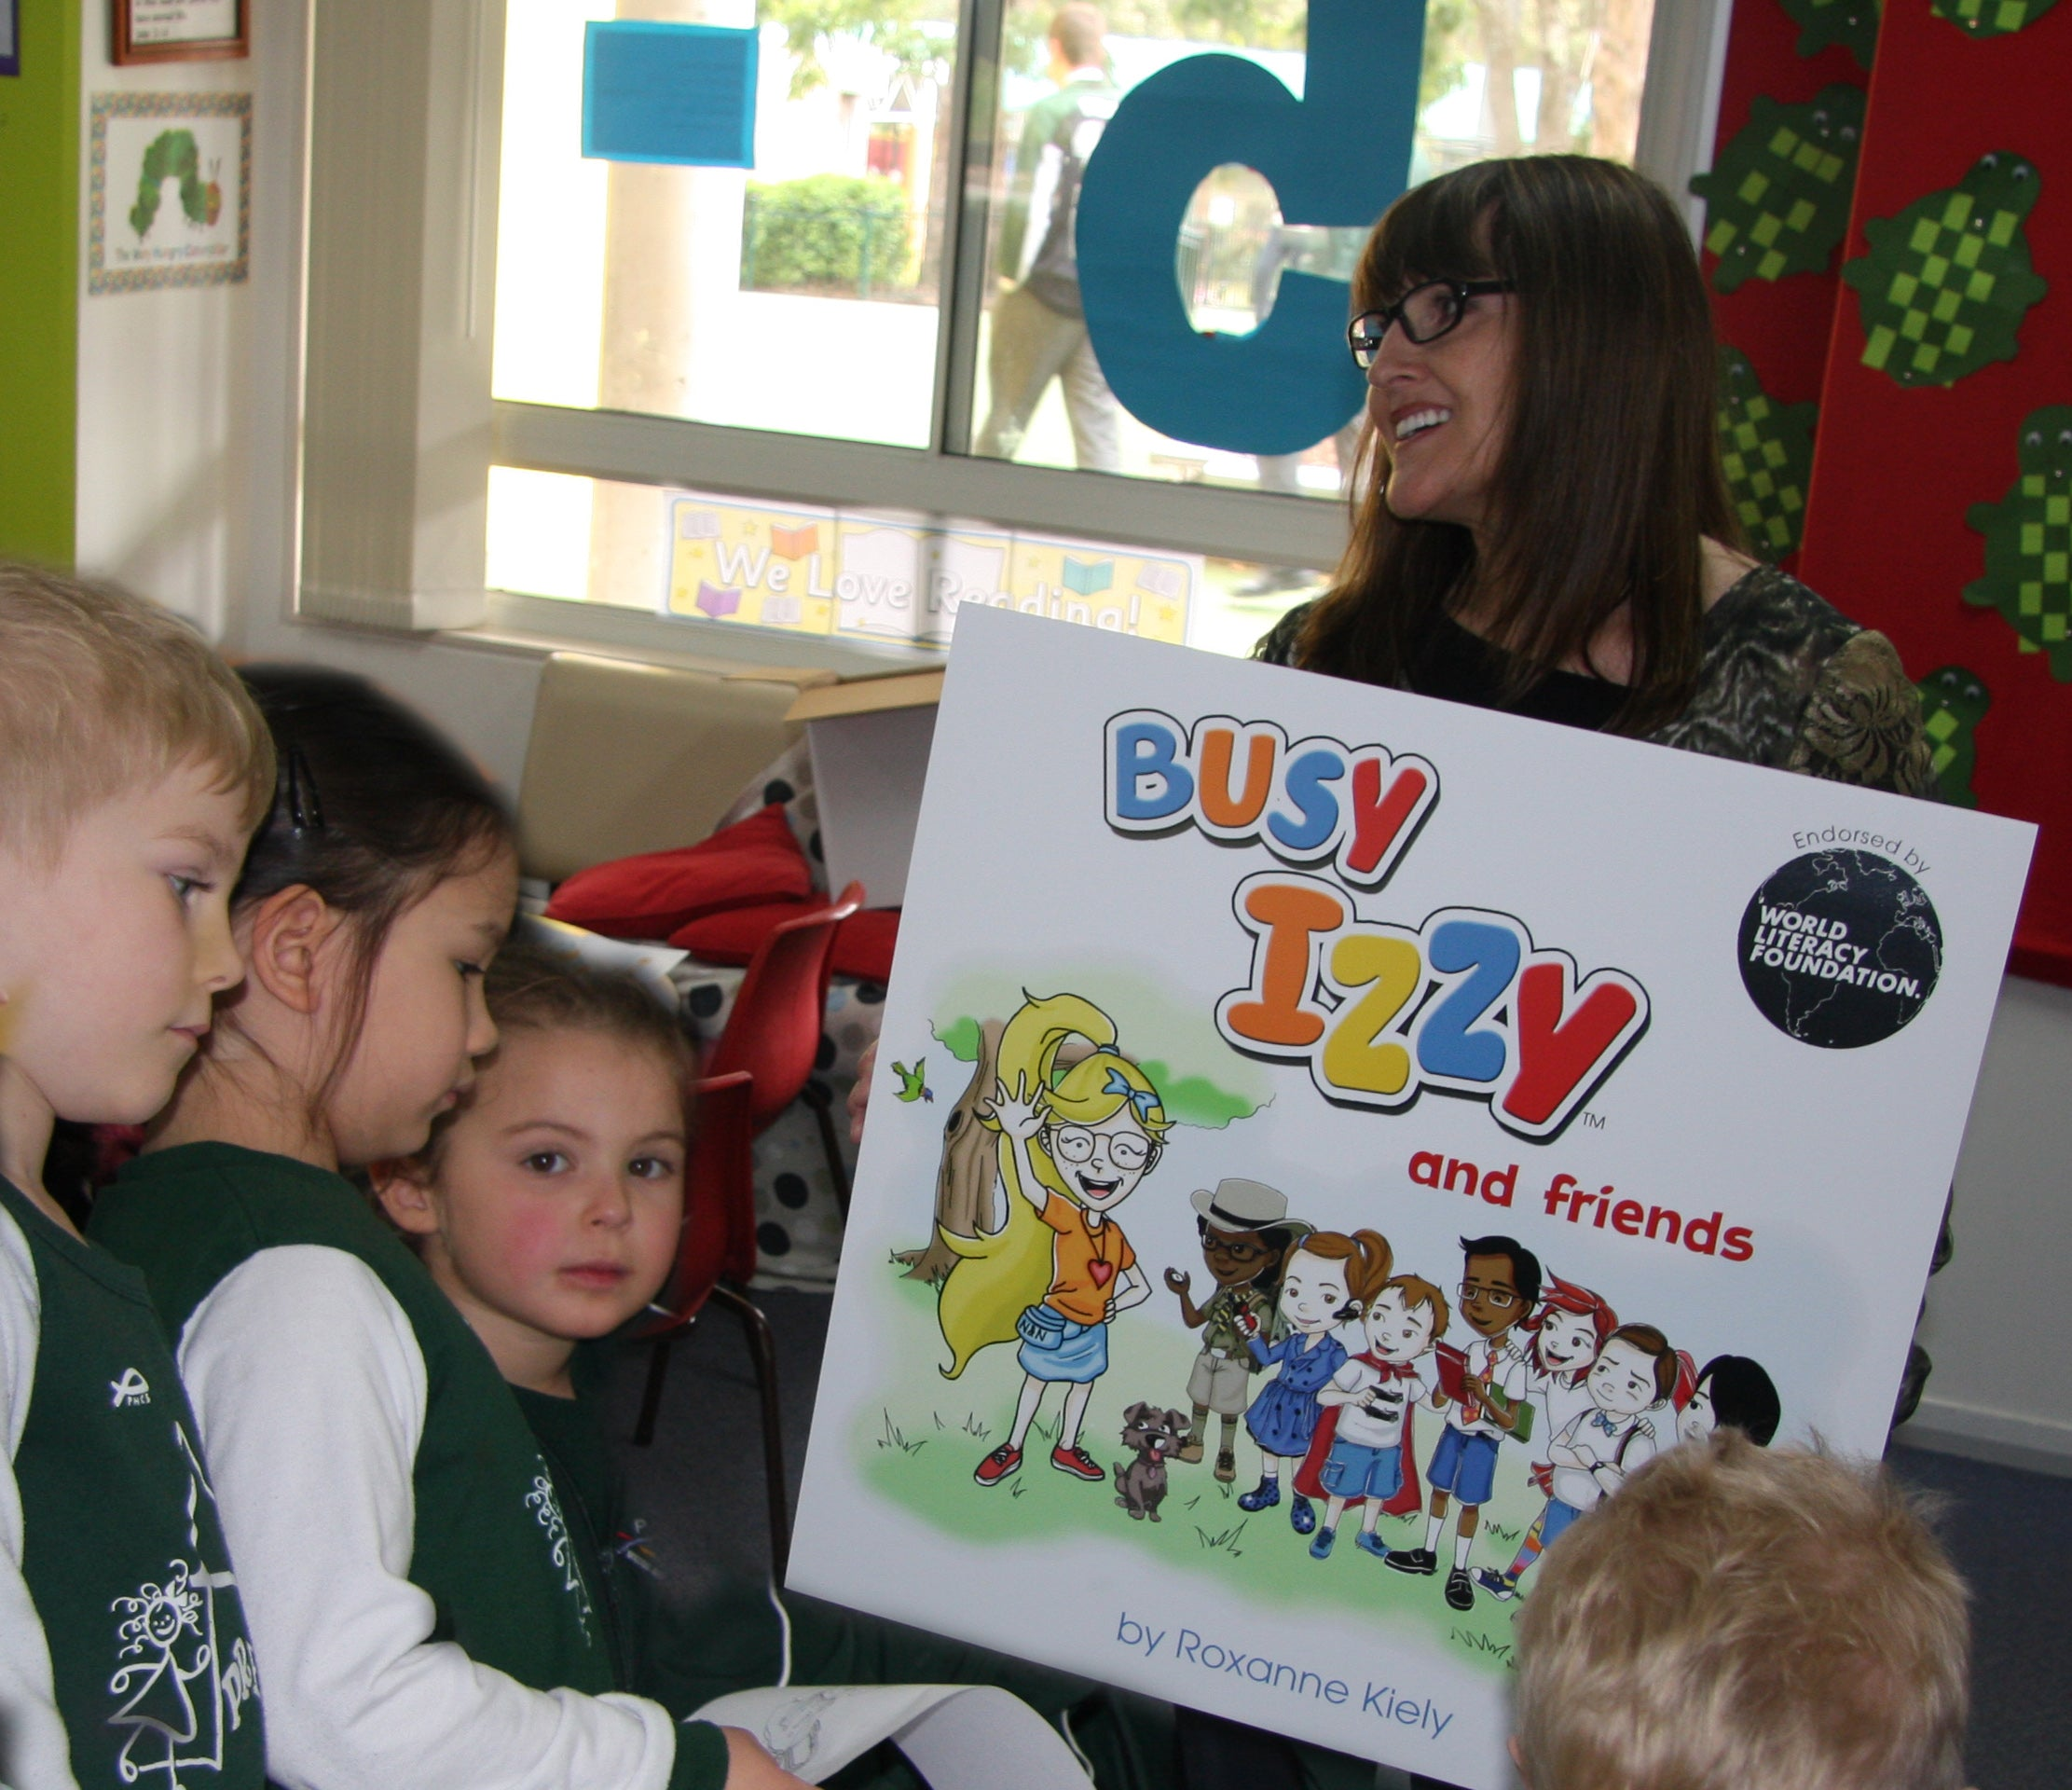 Roxanne Kiely presents Busy Izzy and Friends to the students at of Pacific Hills Primary school.